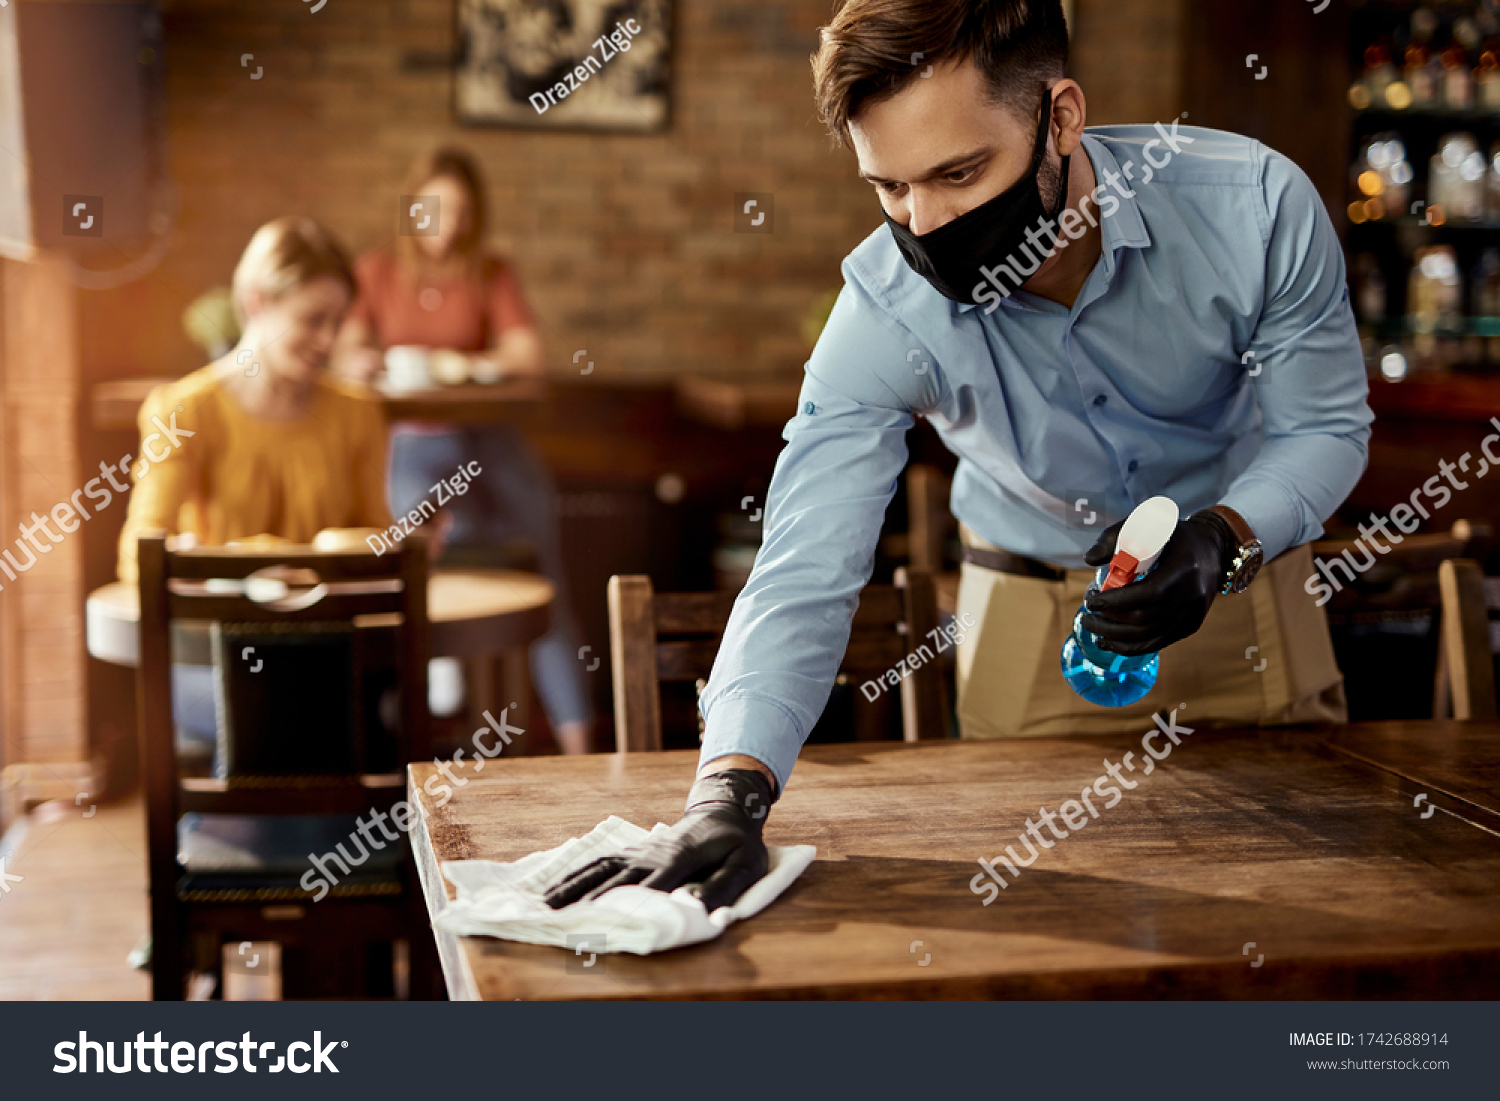 Young waiter wearing protective face mask while cleaning tables while working in a cafe.  #1742688914